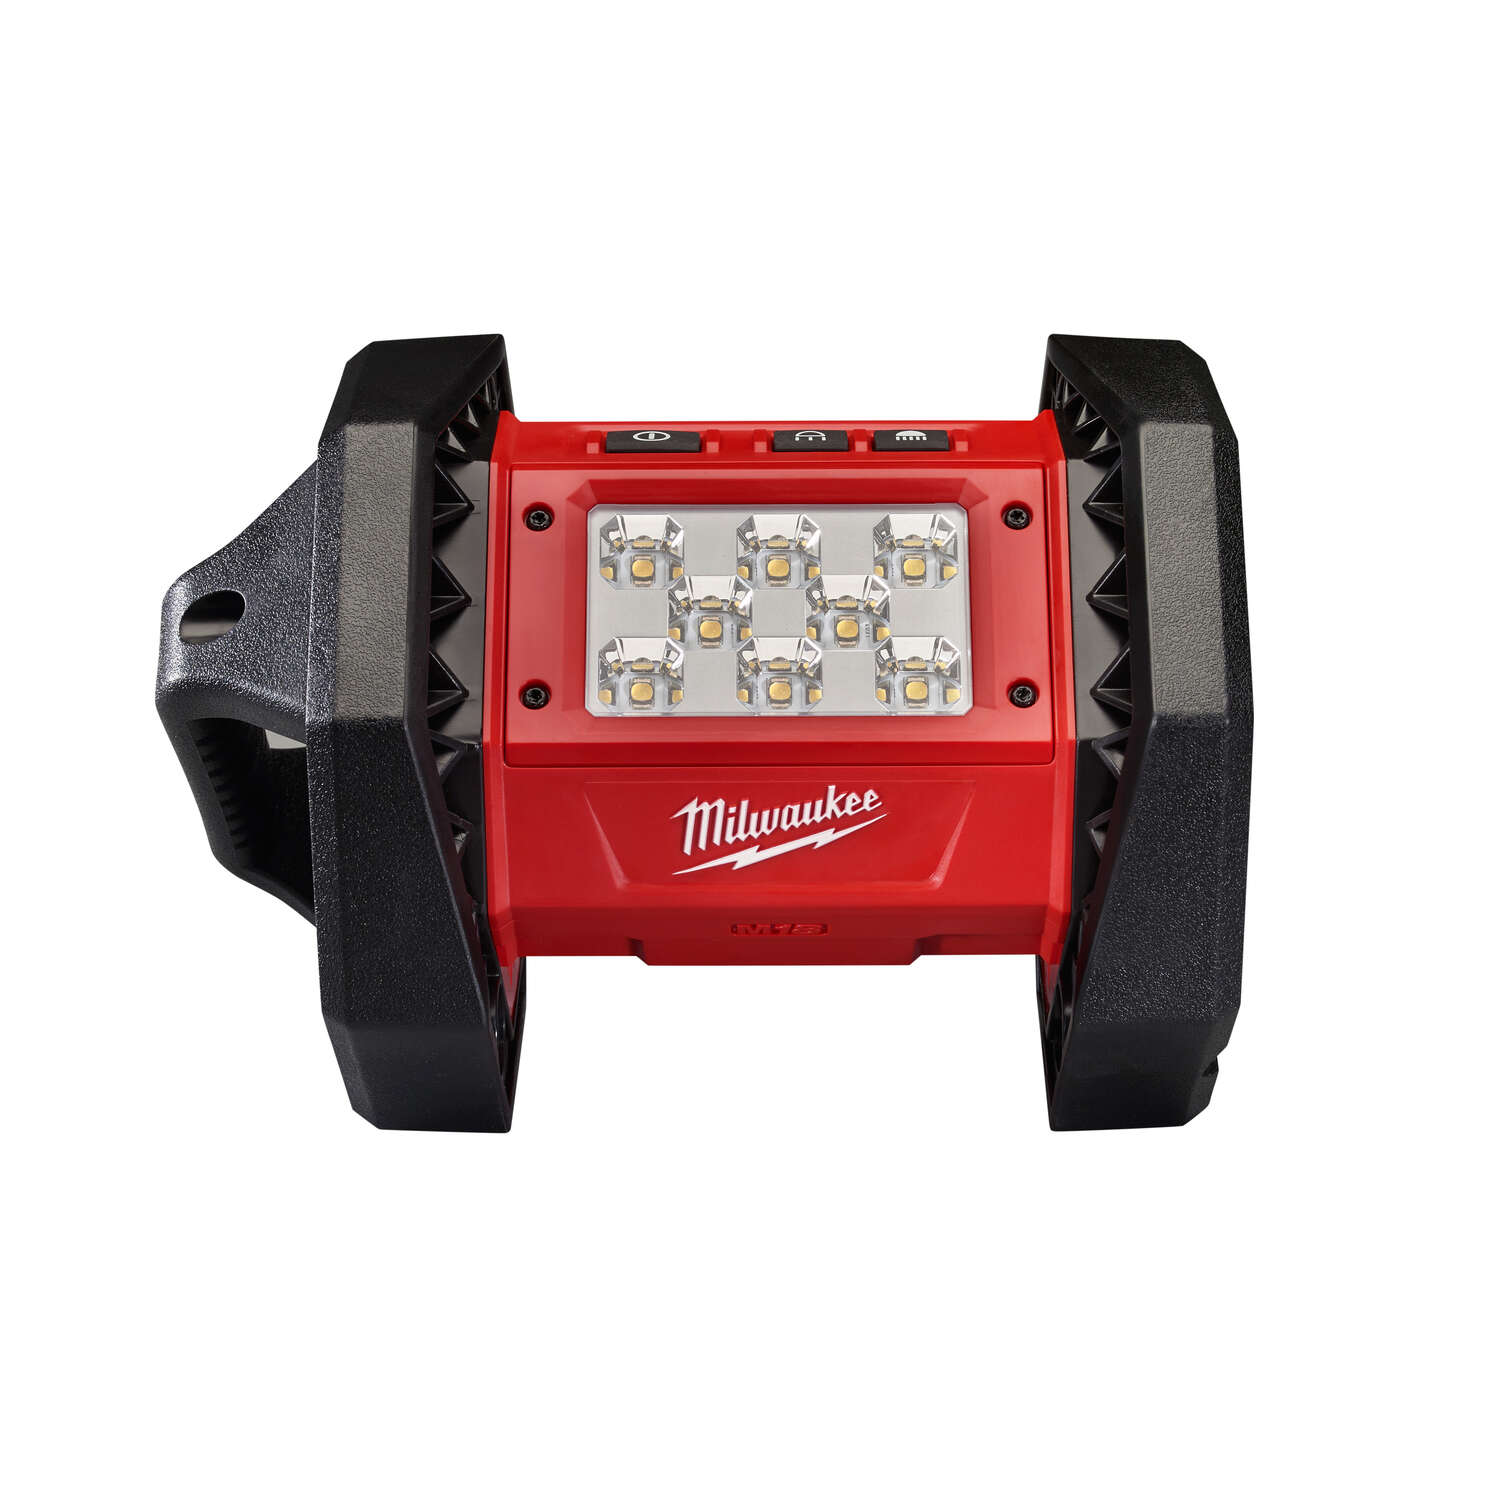 Milwaukee Rover 1500 lumens LED Battery Handheld Flood Light